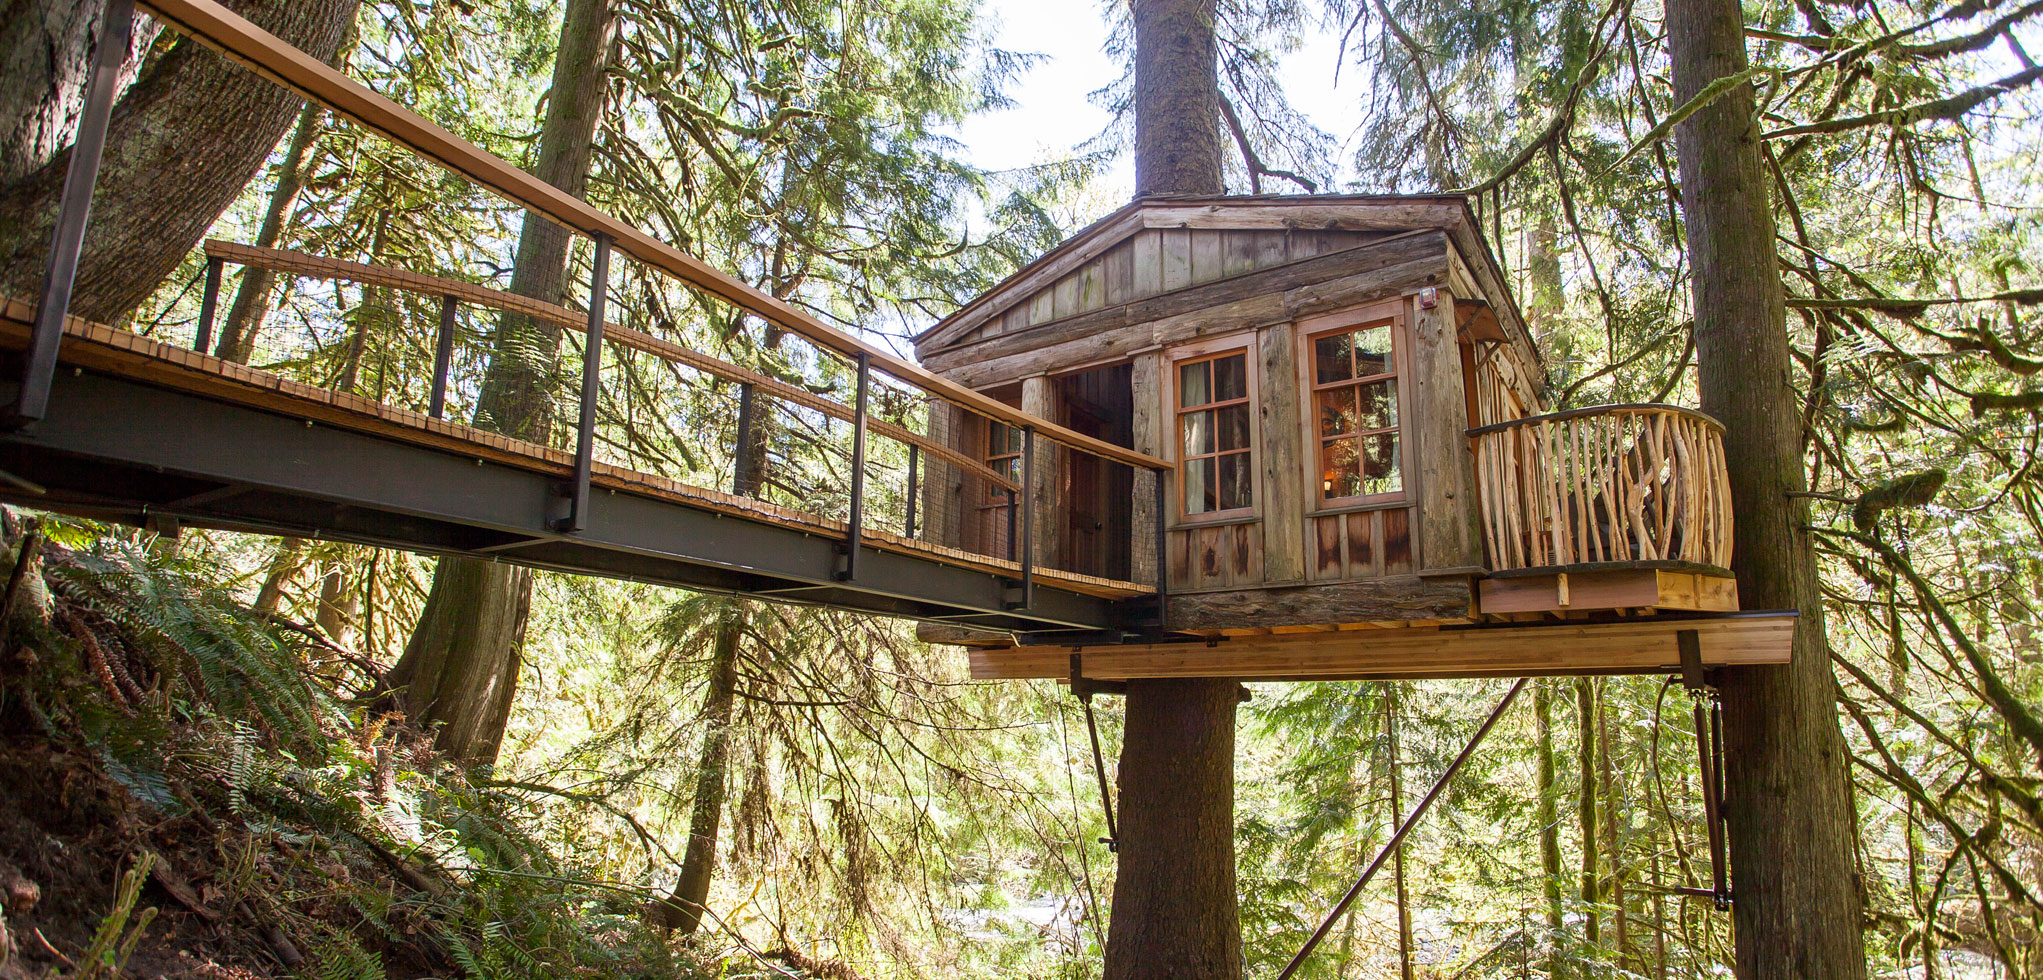 Treehouse Point in Fall City Washington